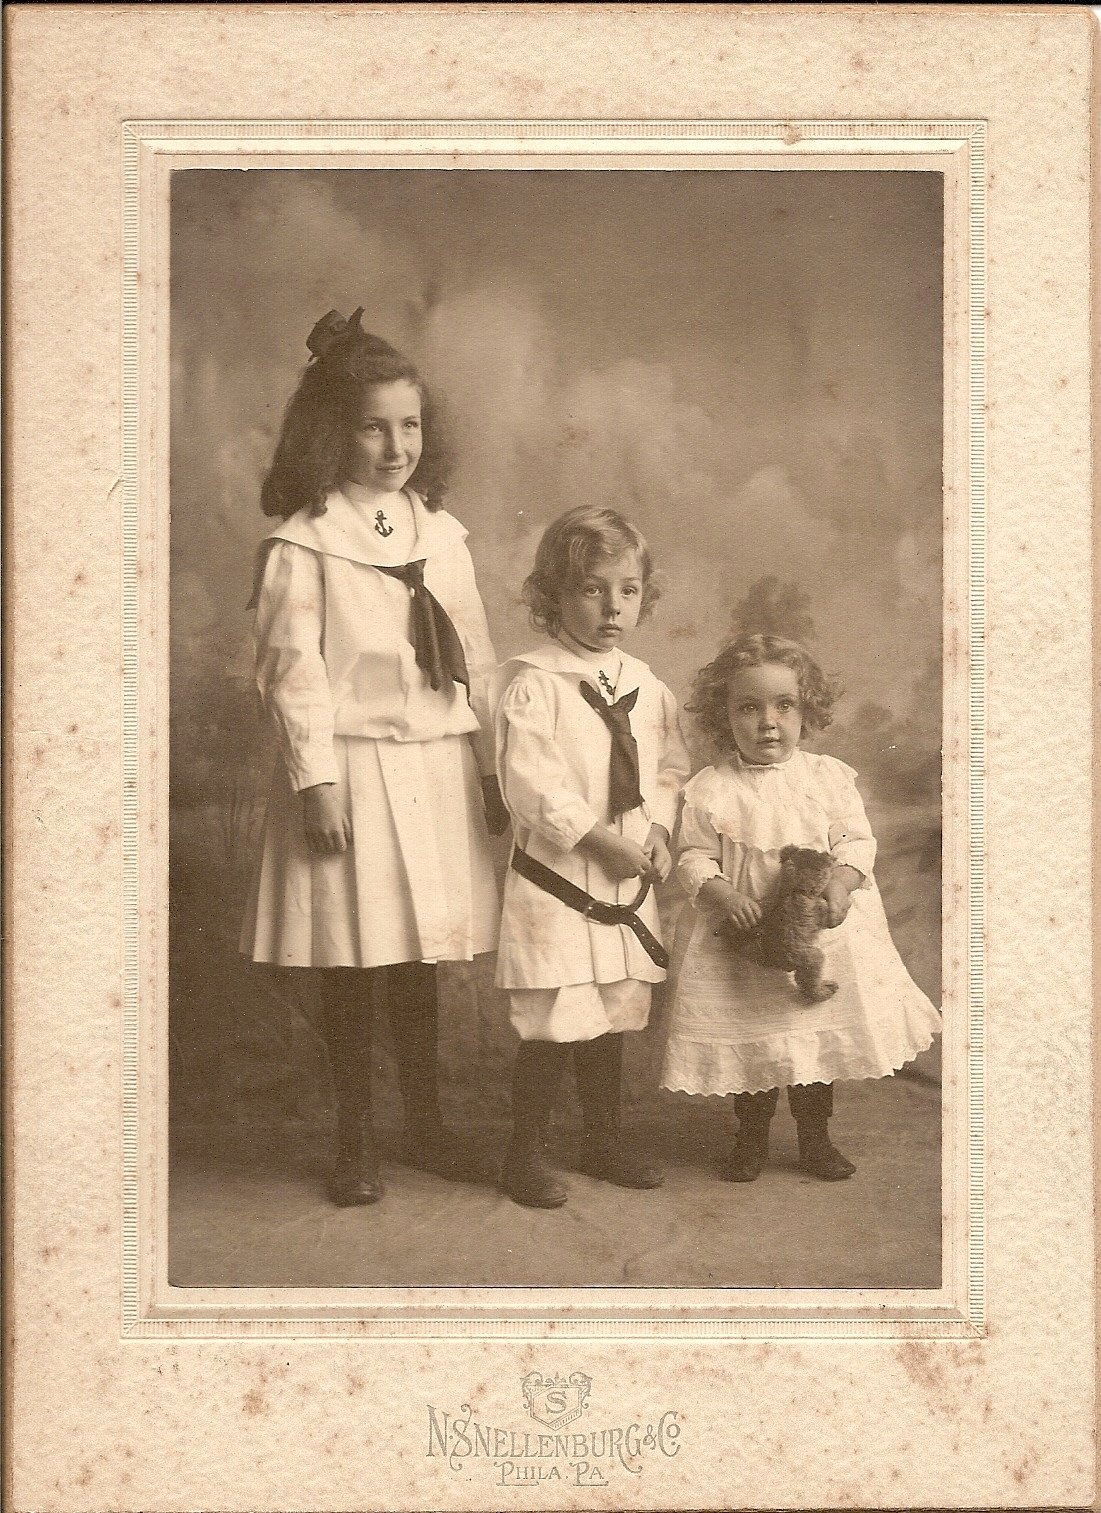 Helen, Robert, and Ruth Purvis, about 1907